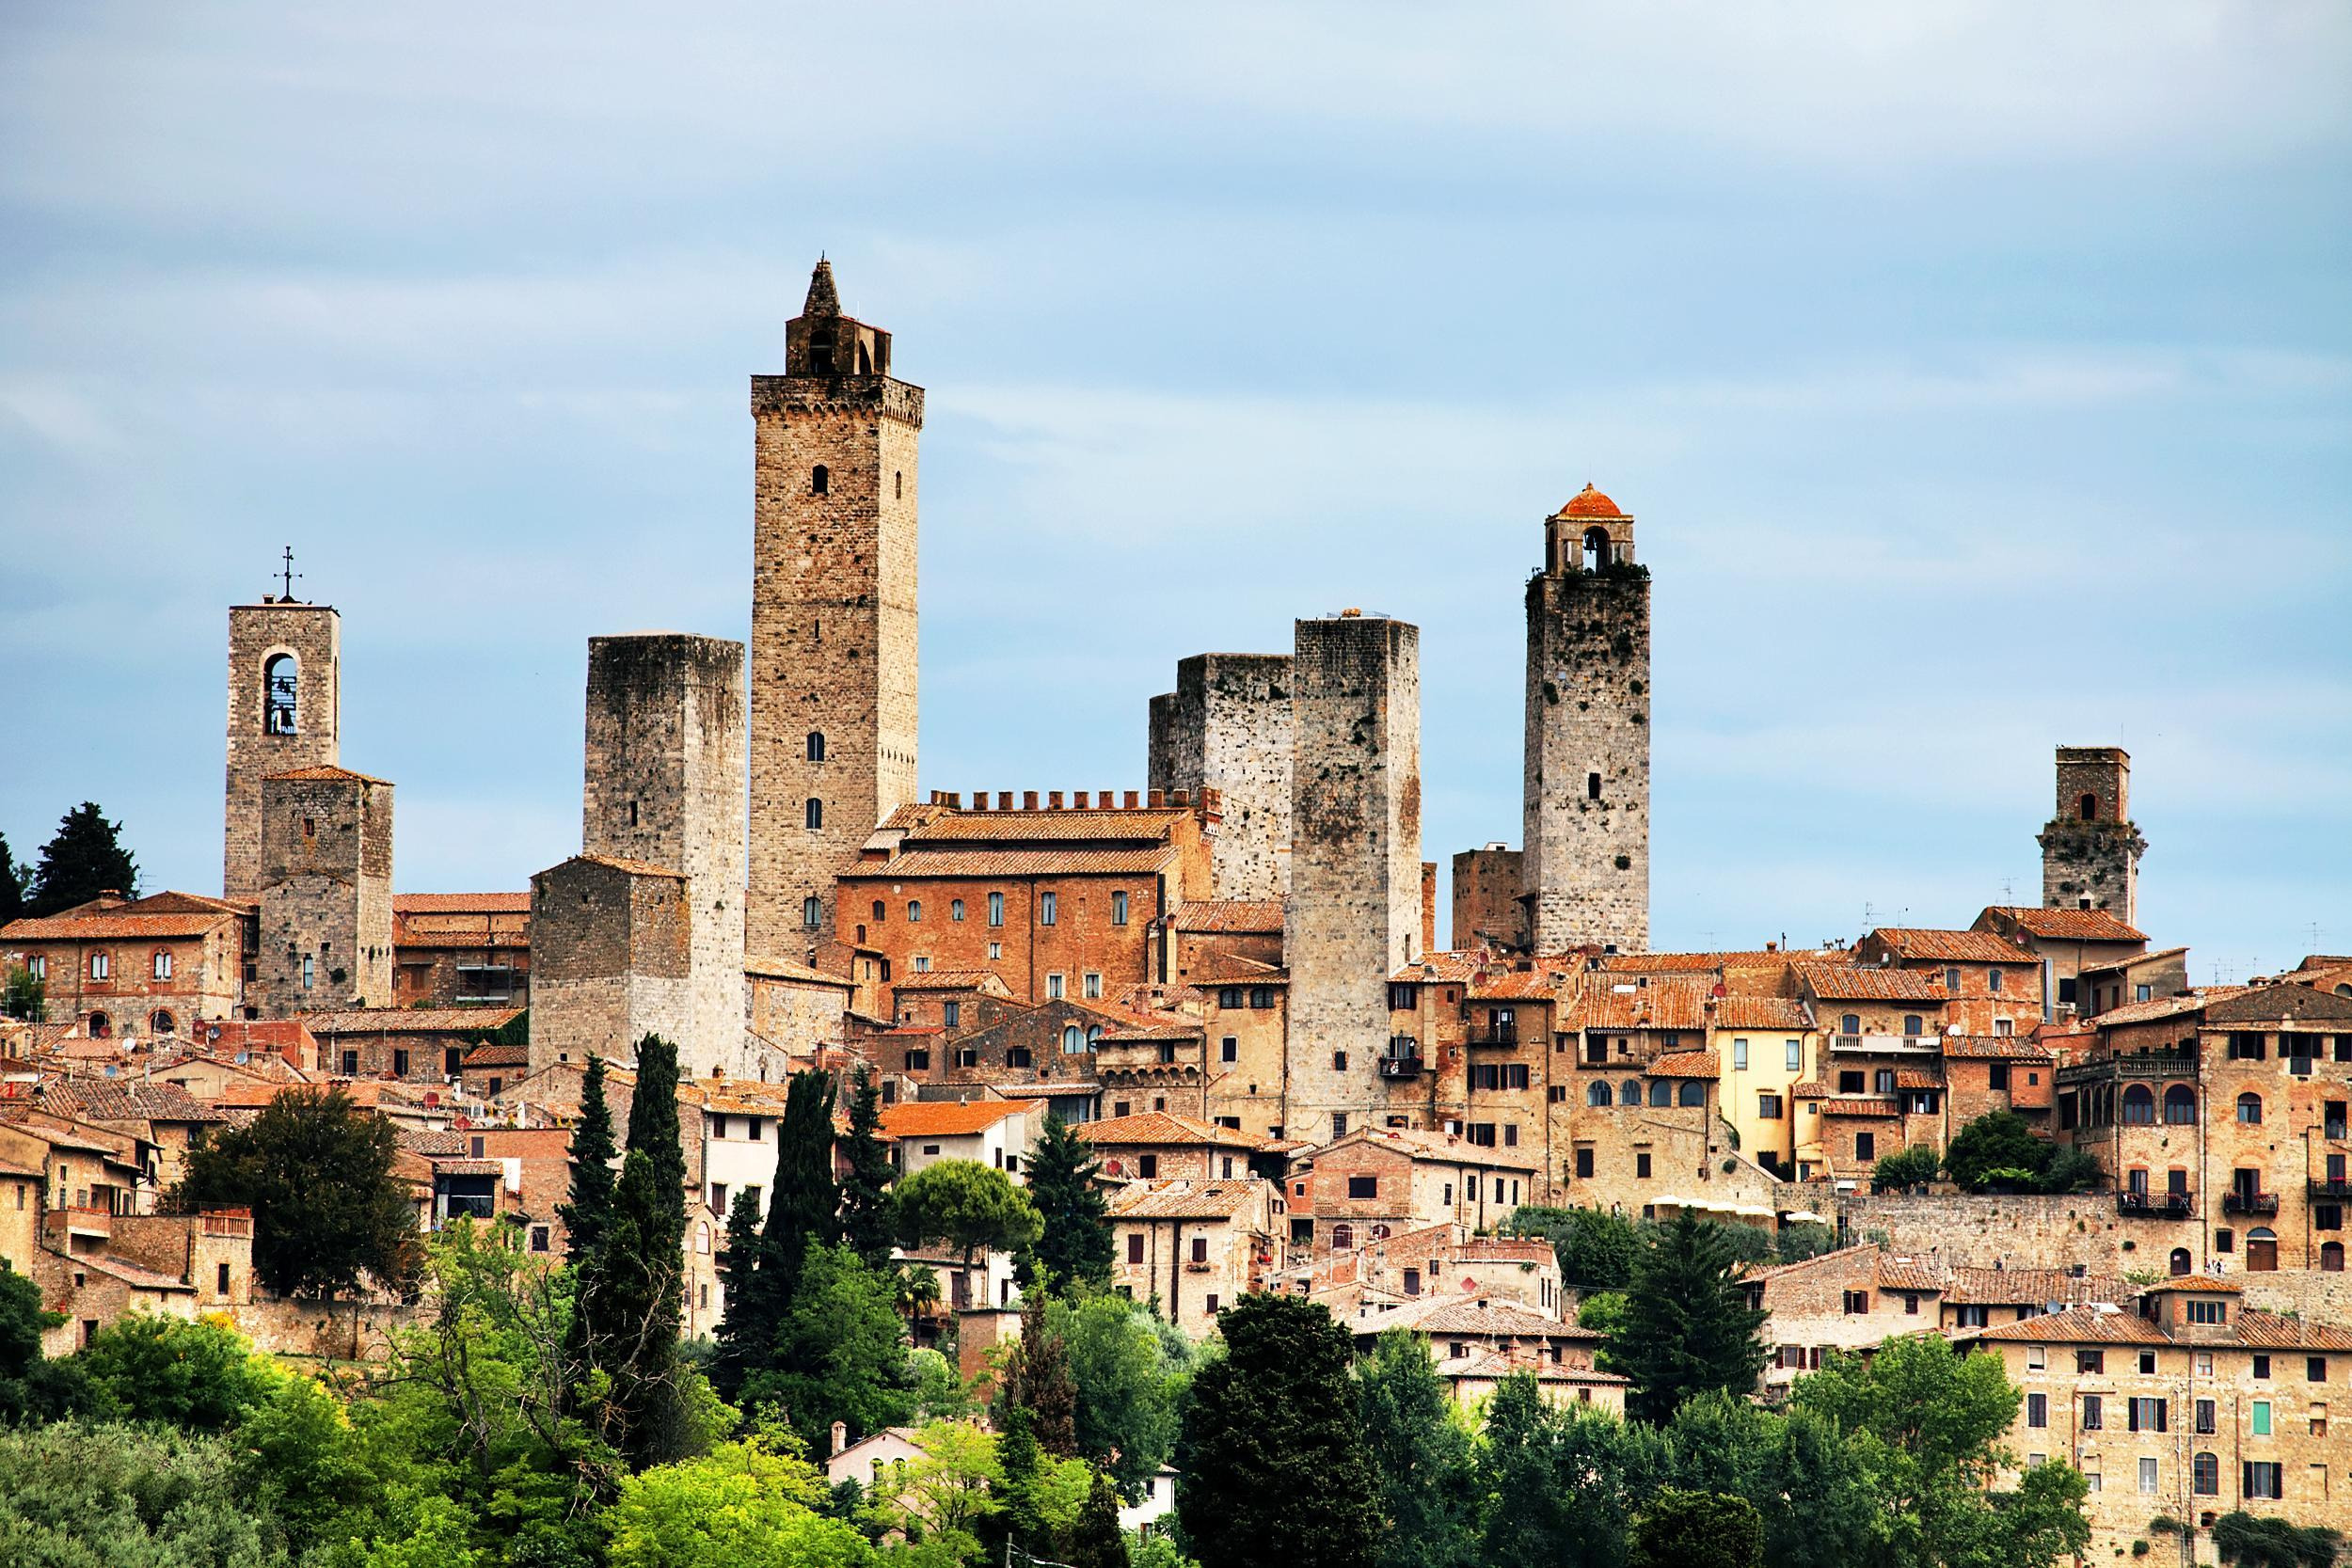 How to Spend 2 Days in San Gimignano